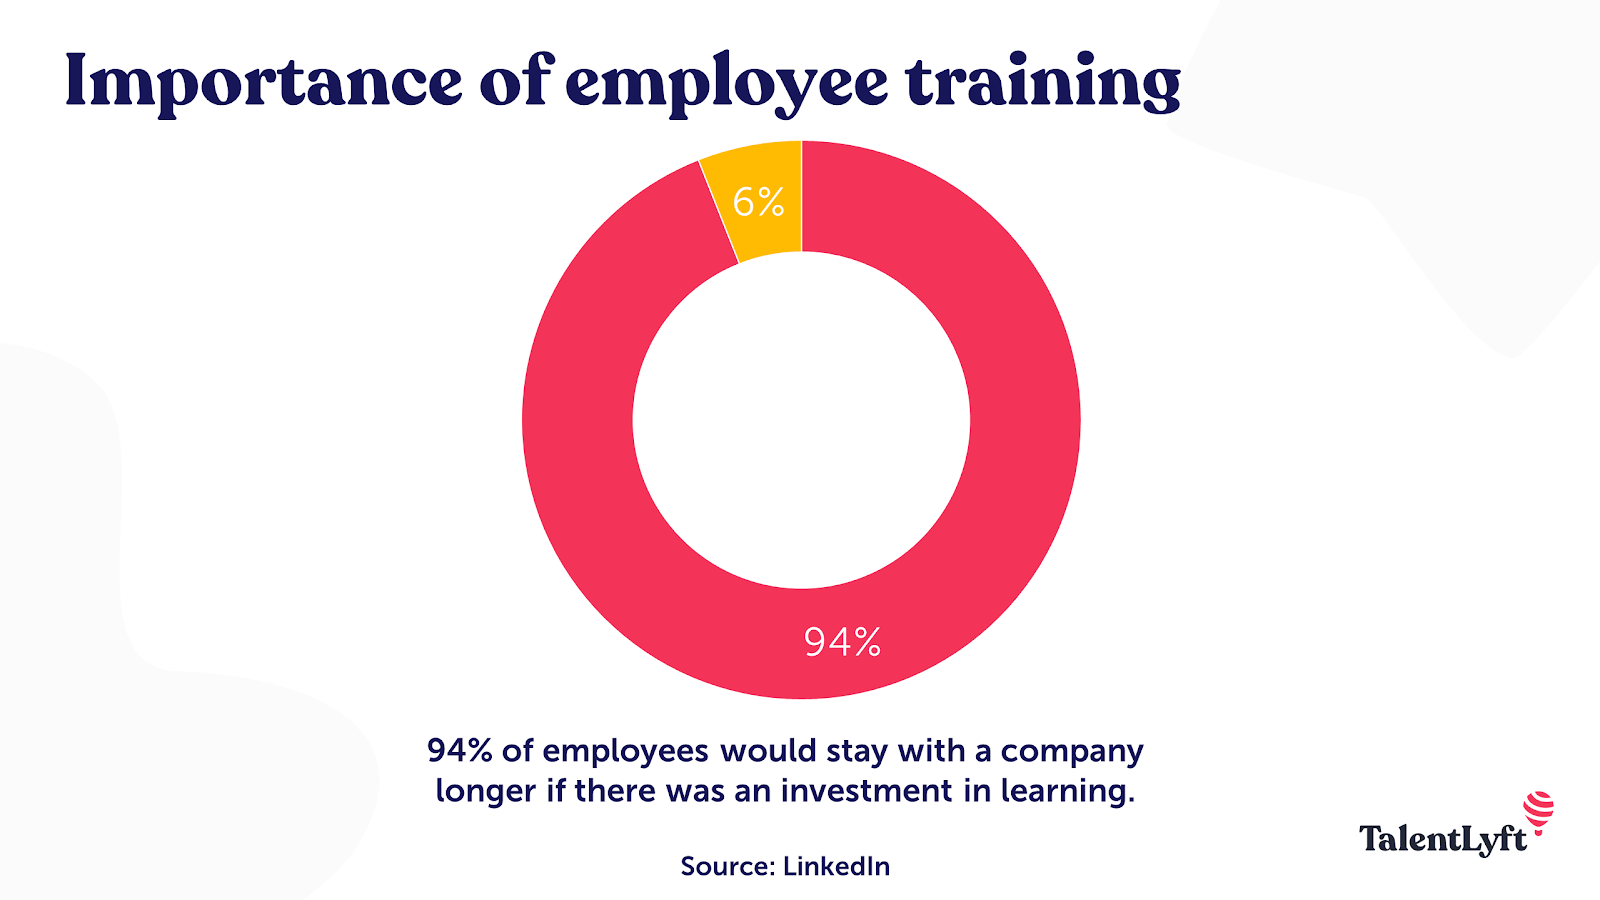 Employee training and learning